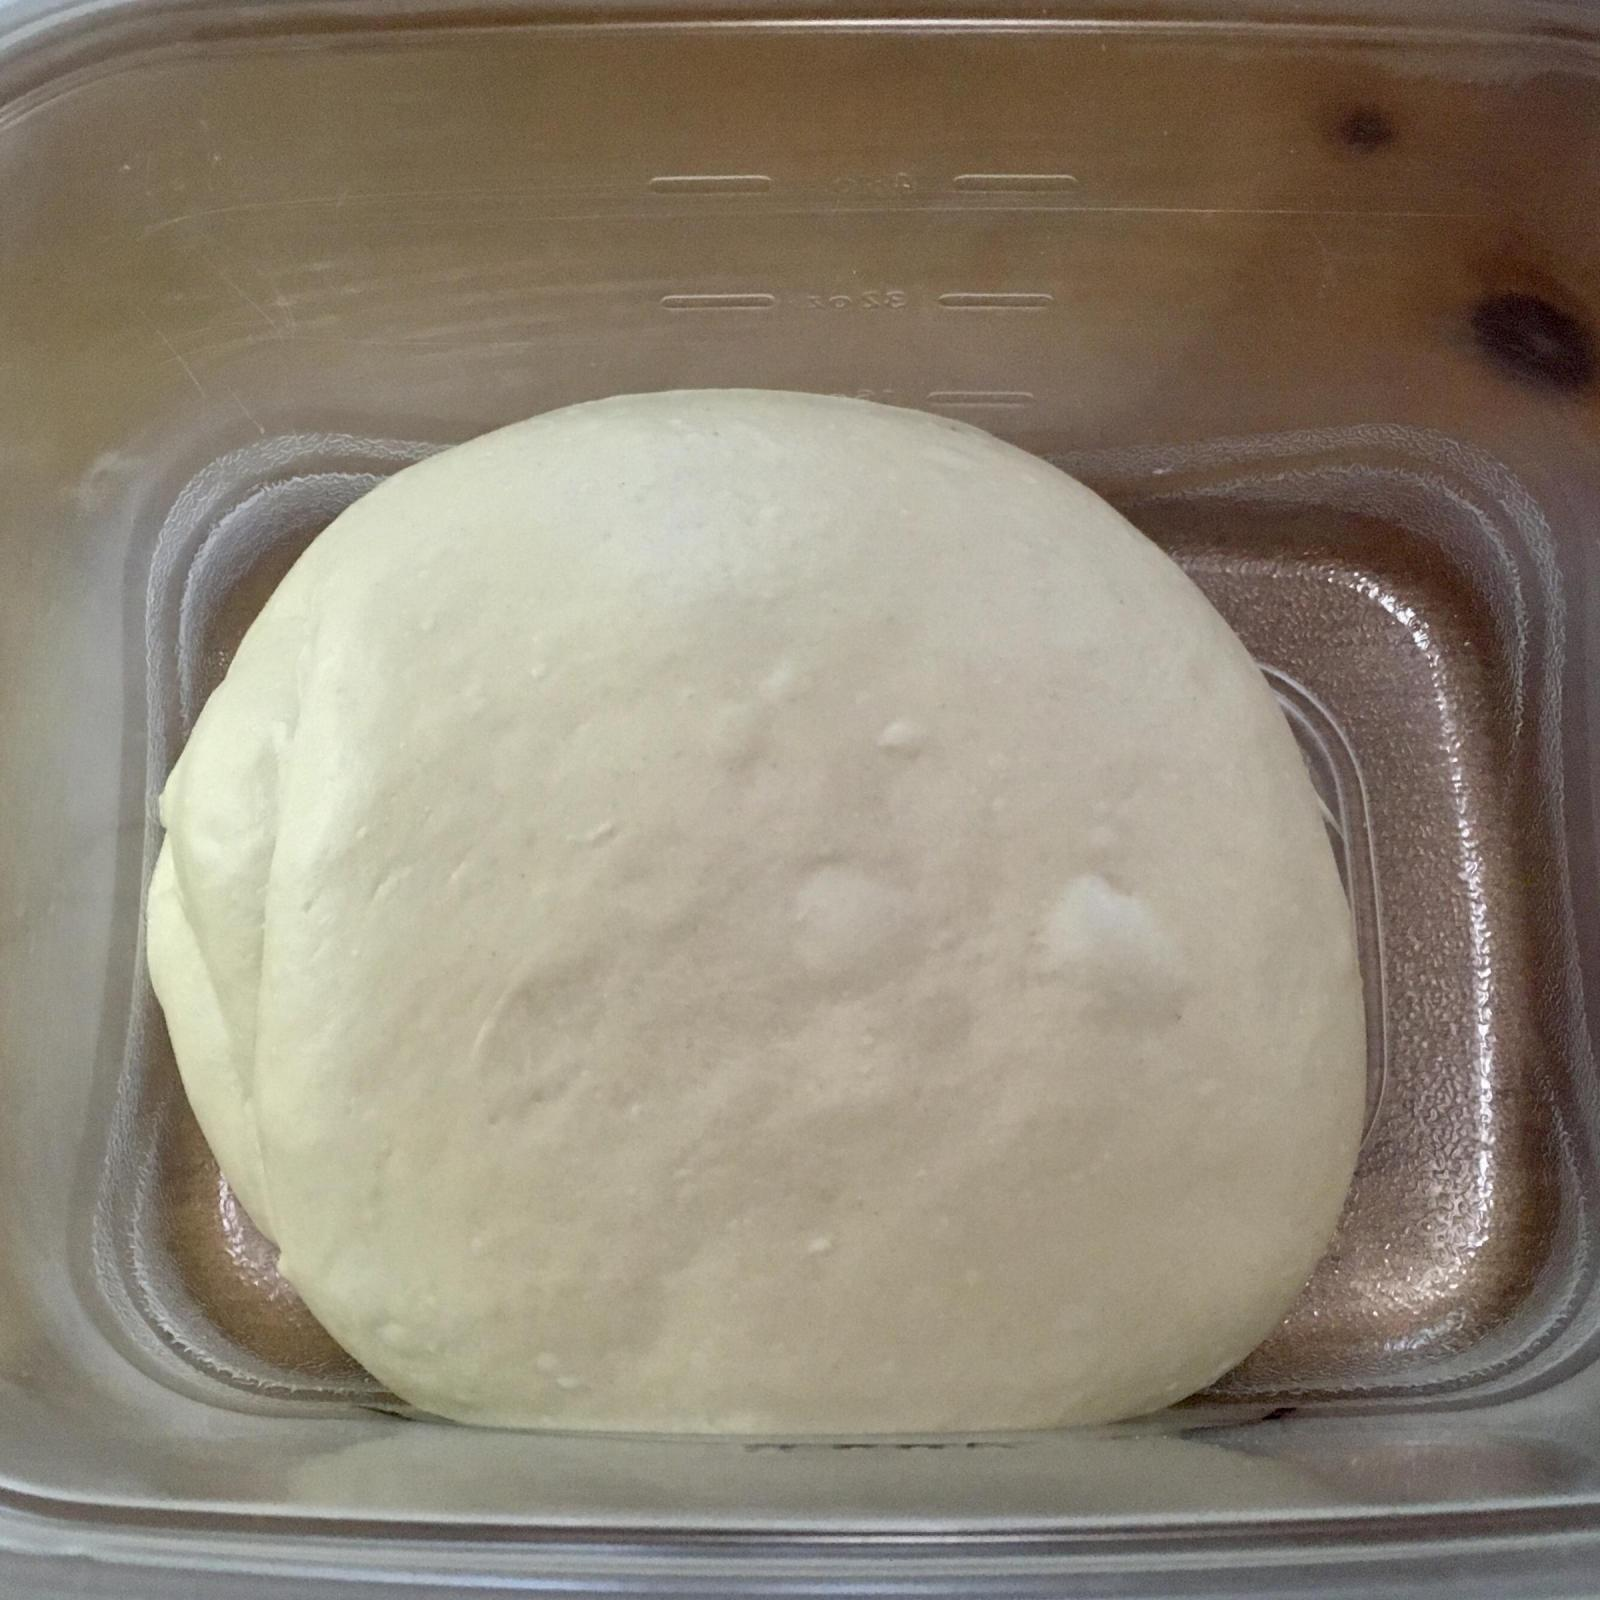 Dough after bulk ferment